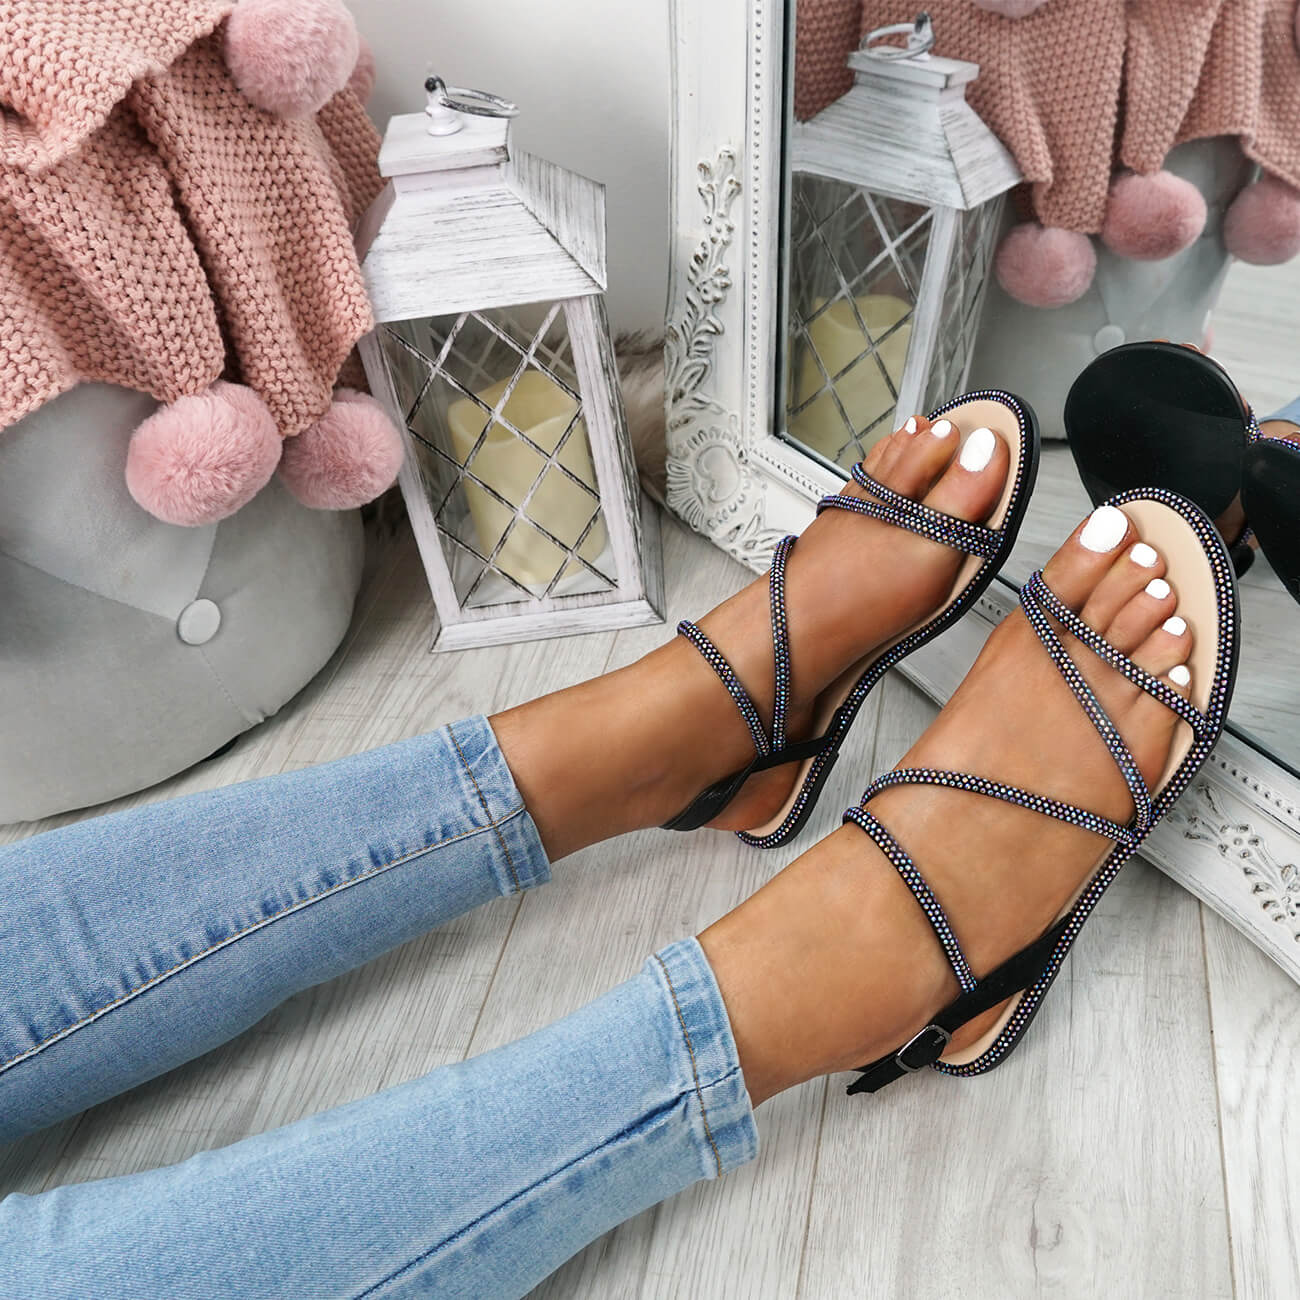 WOMENS-LADIES-STUDDED-ANKLE-STRAP-FLAT-SHOES-PARTY-CLUB-SANDALS-SHOES-SIZE-UK thumbnail 10